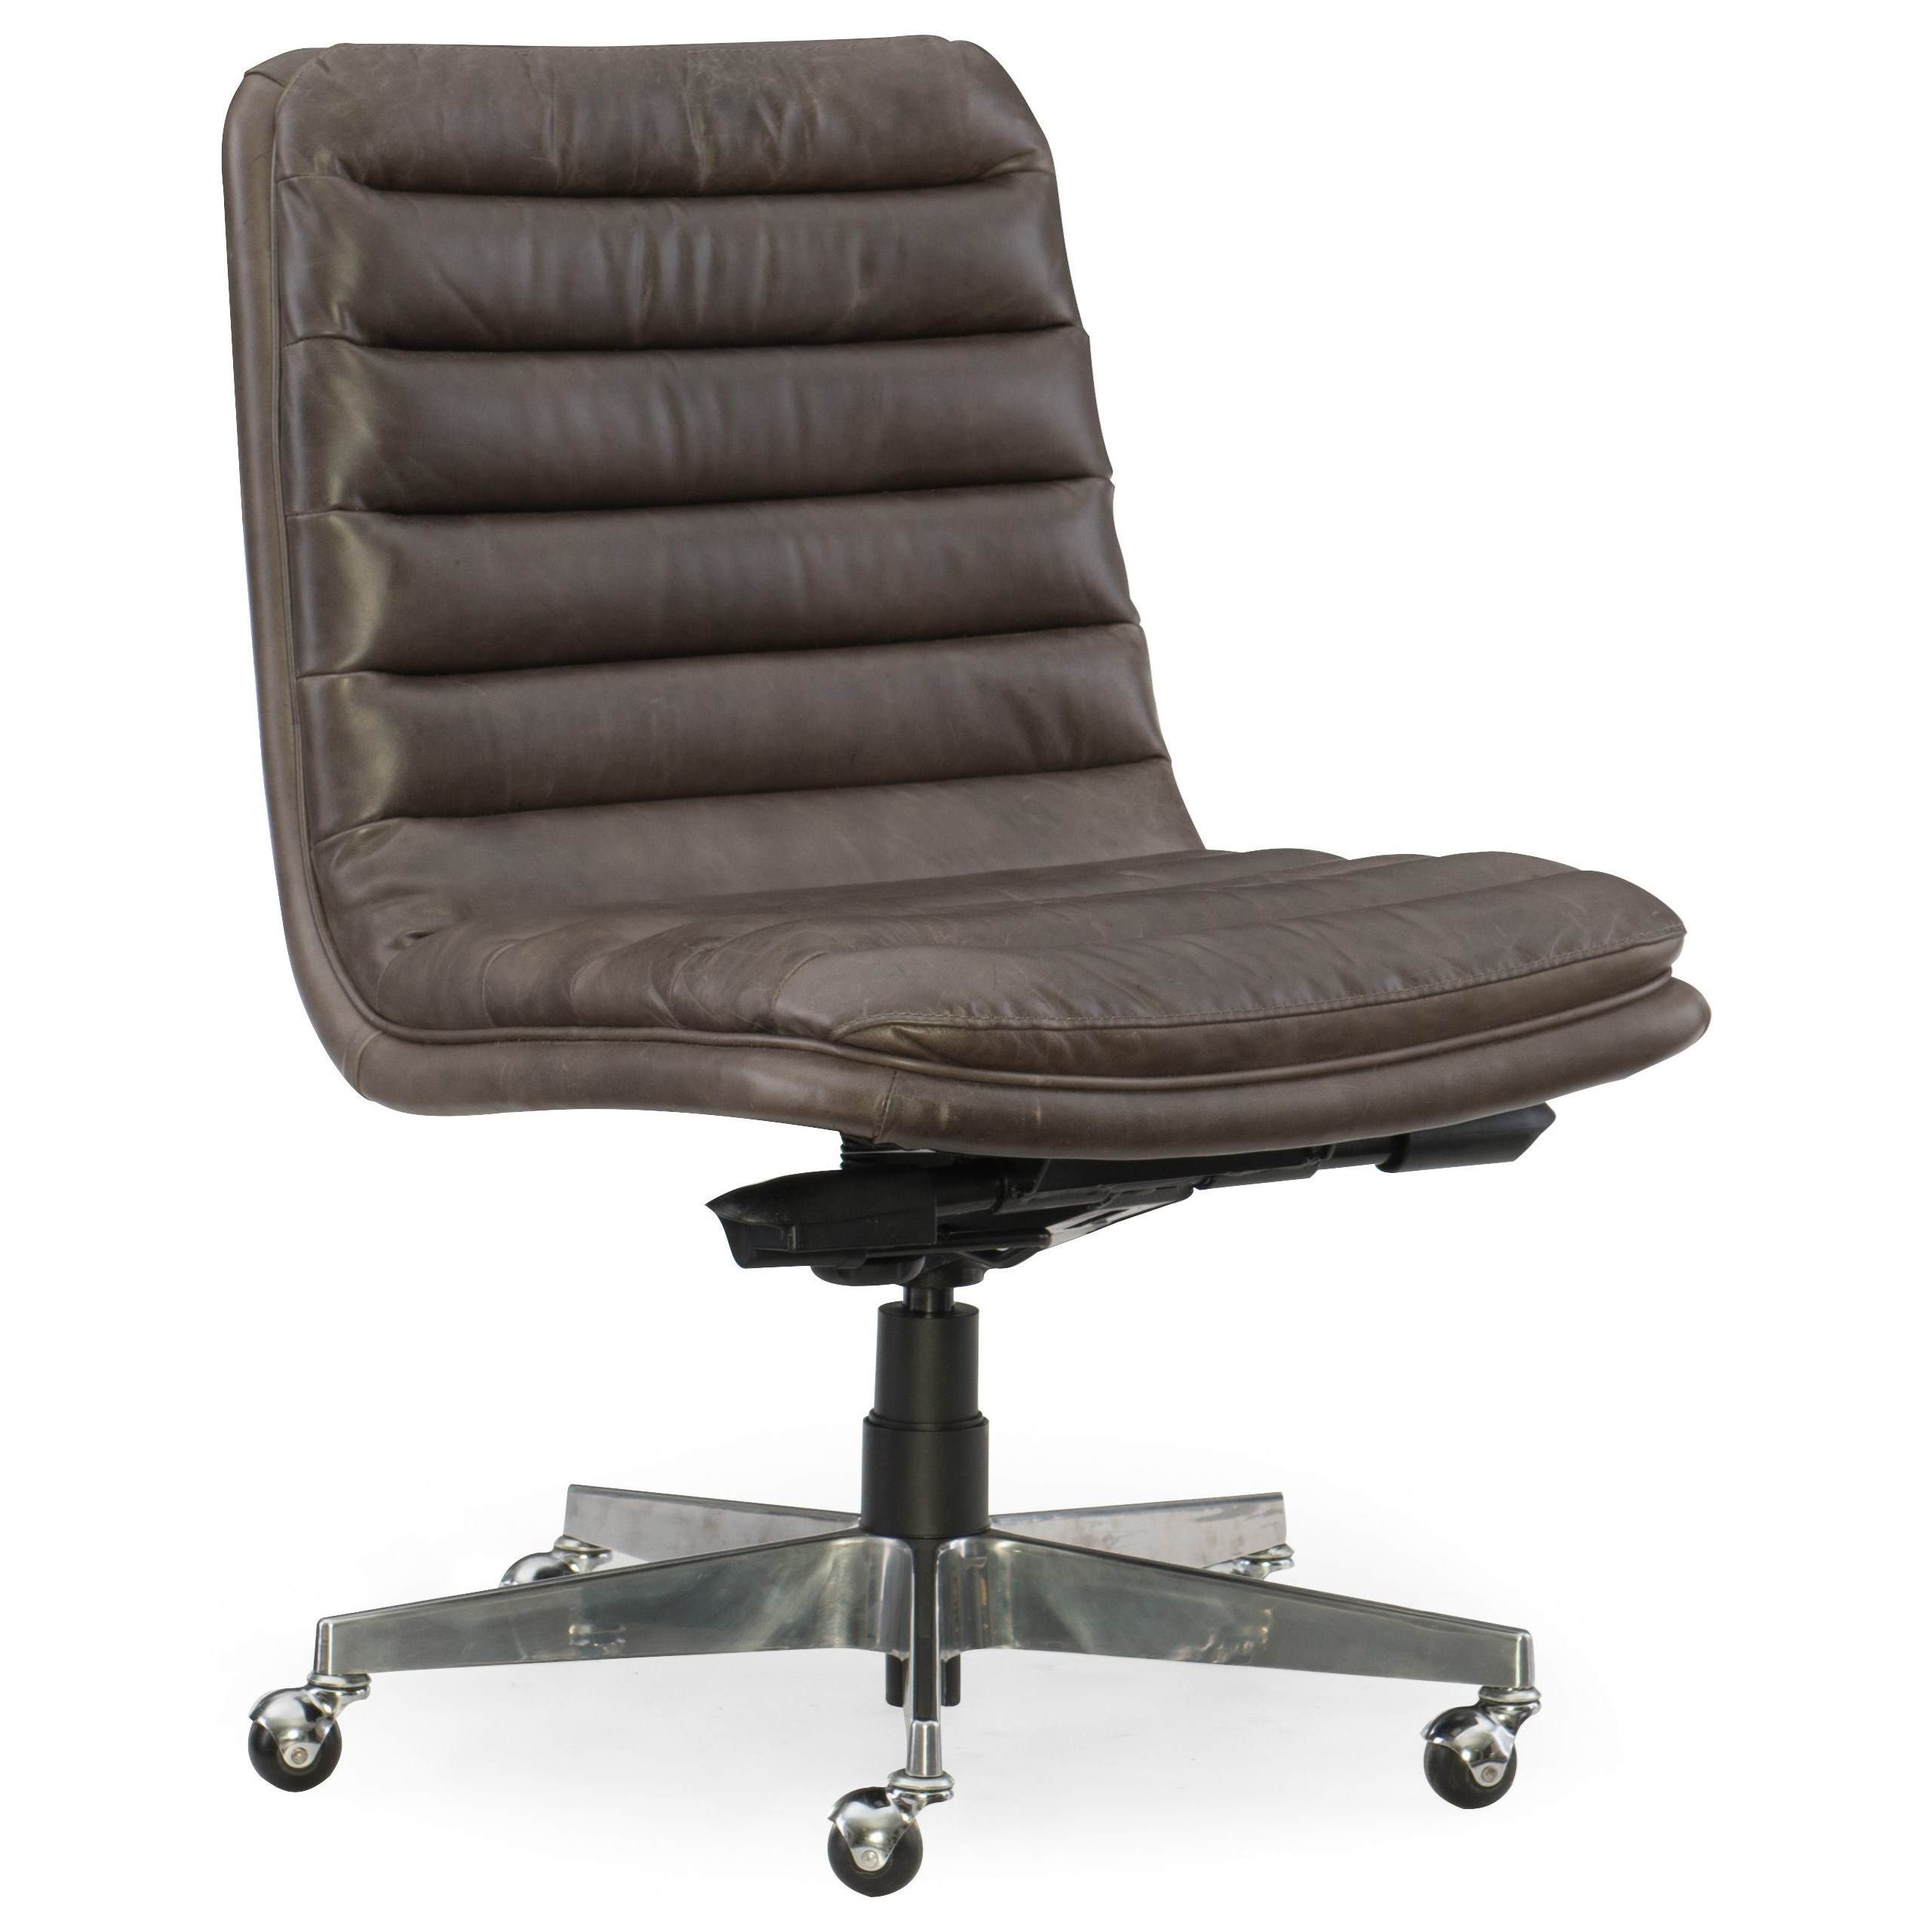 Executive Seating Wyatt Home Office Chair by Hooker Furniture at Baer's Furniture